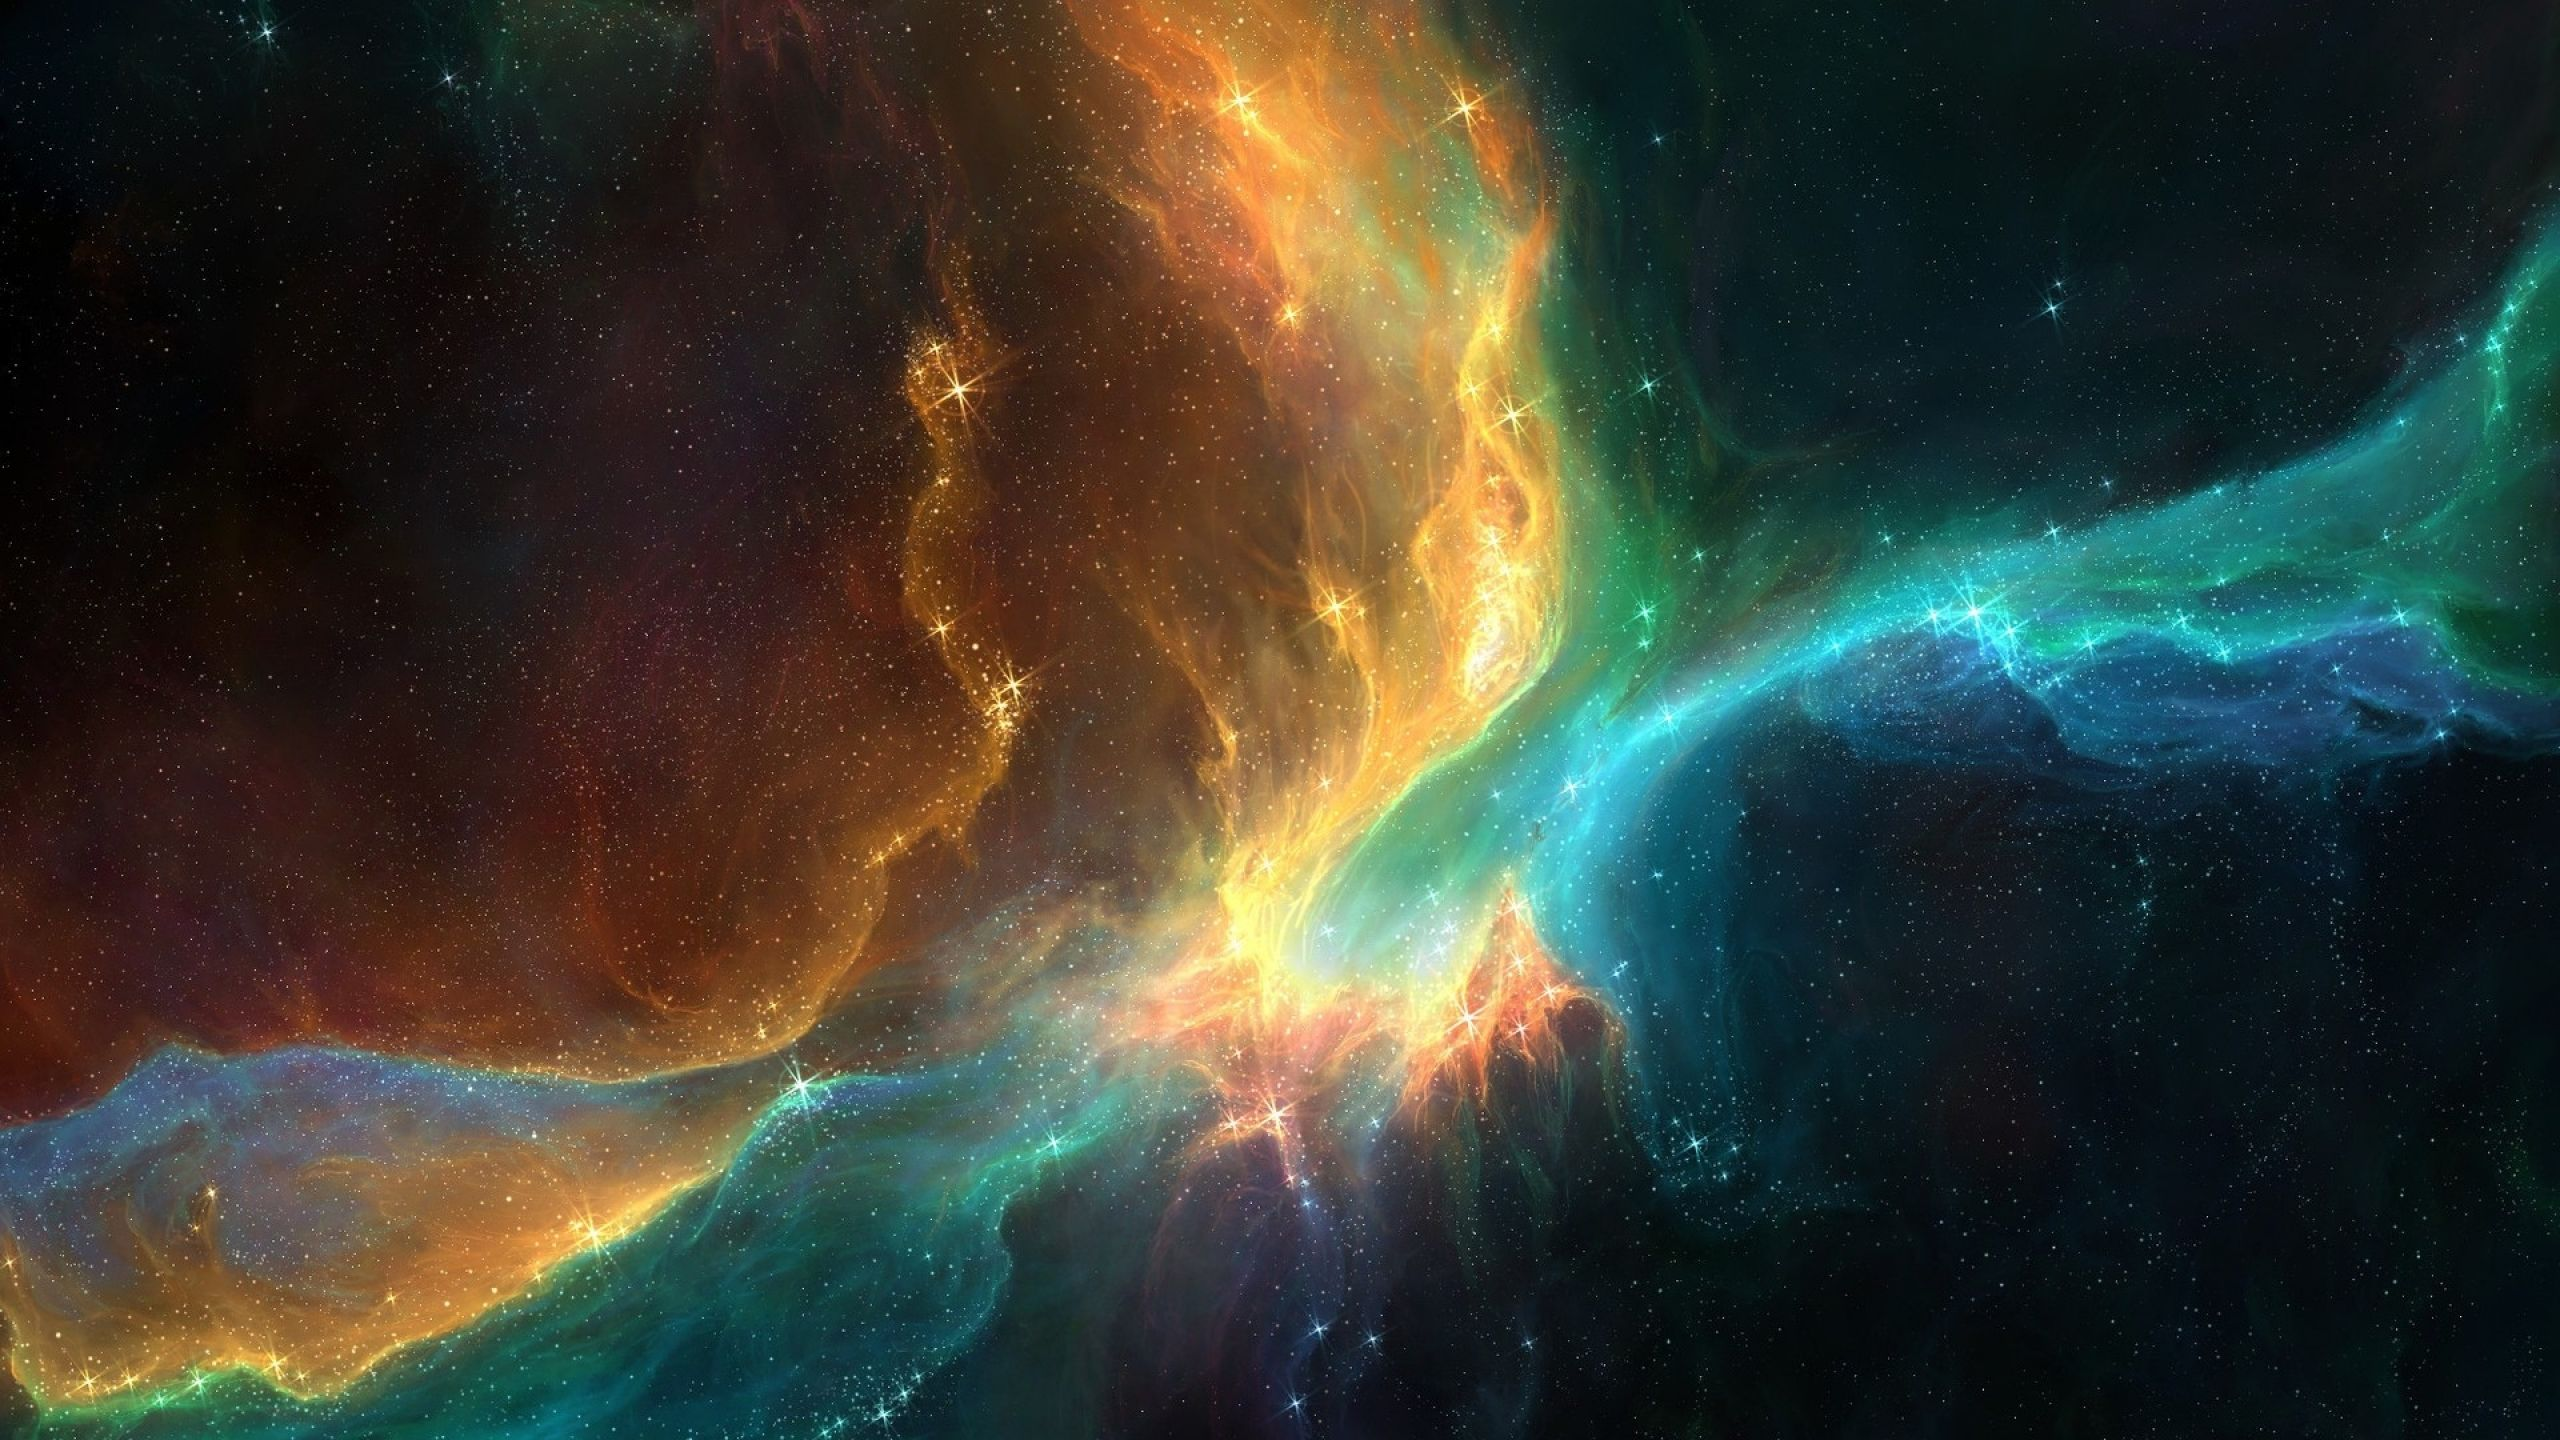 colorful space nebula wallpapers | img need | screensaver from the